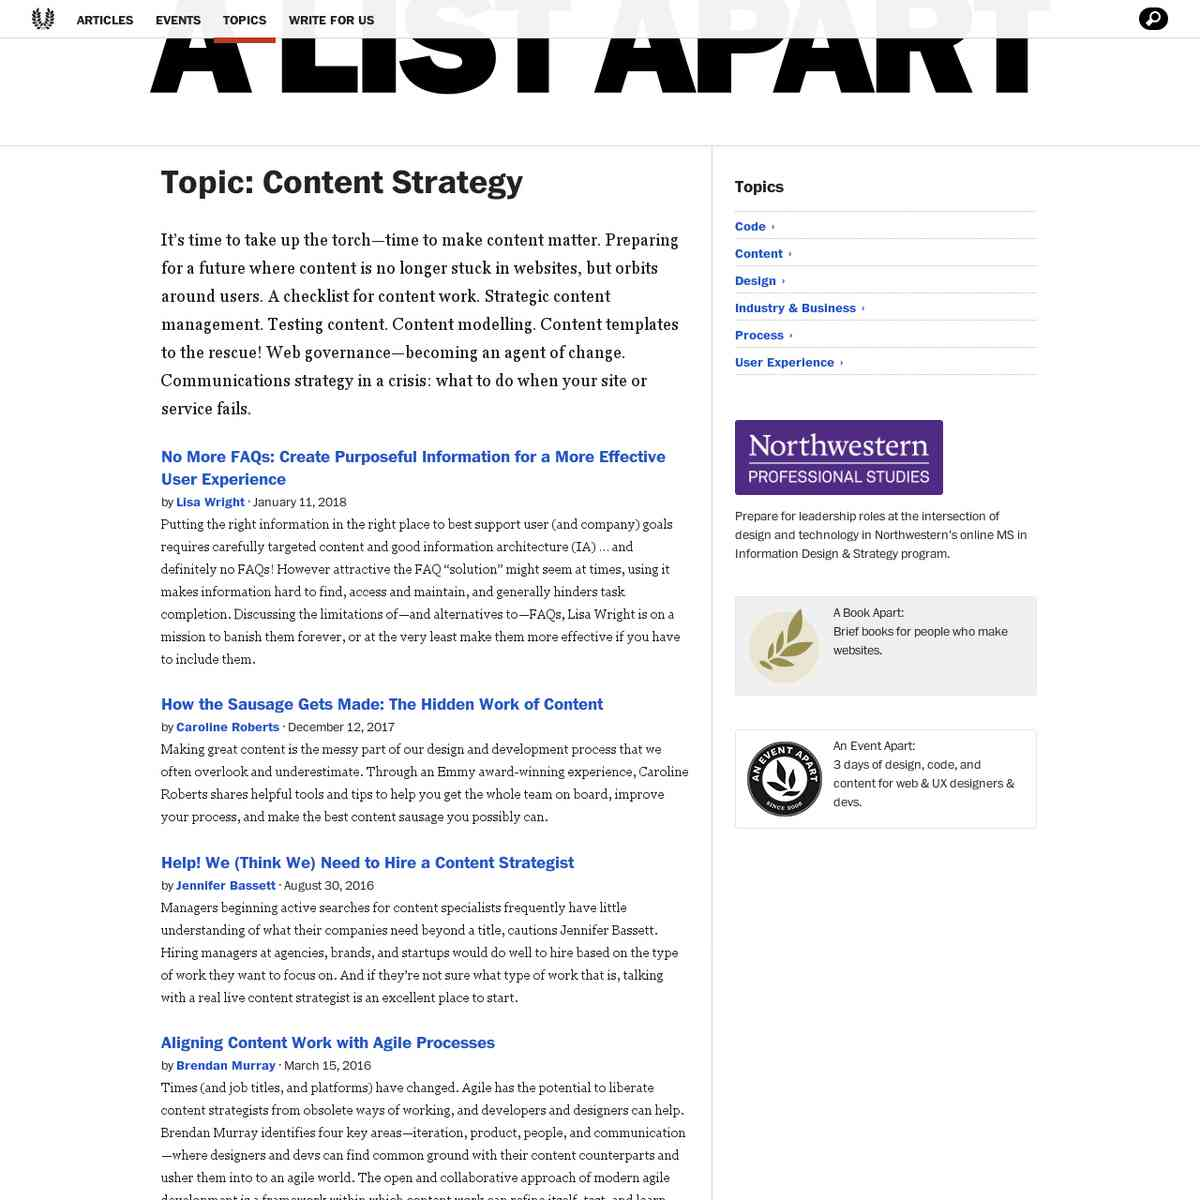 A List Apart Articles about Content Strategy